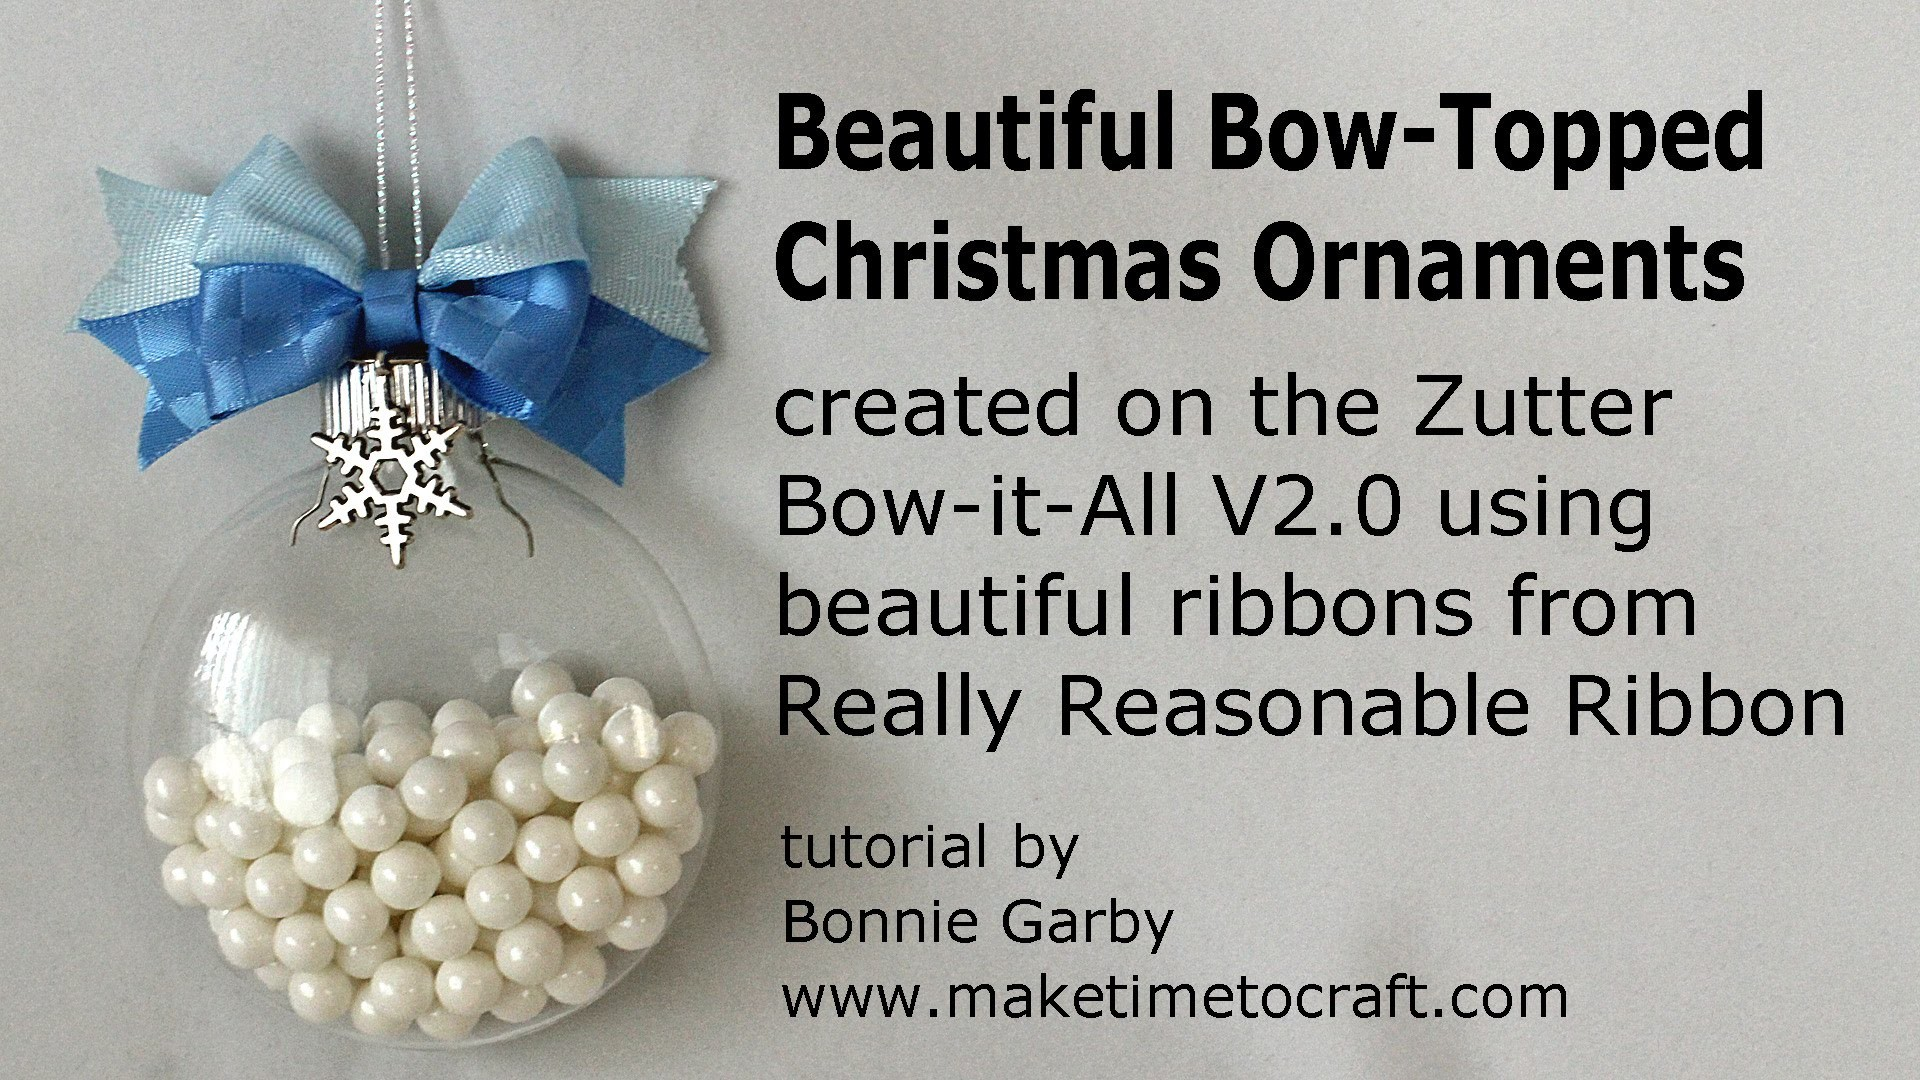 Zutter Bow-it-All V2.0 Tutorial * Beautiful Bow Topped Christmas Ornaments